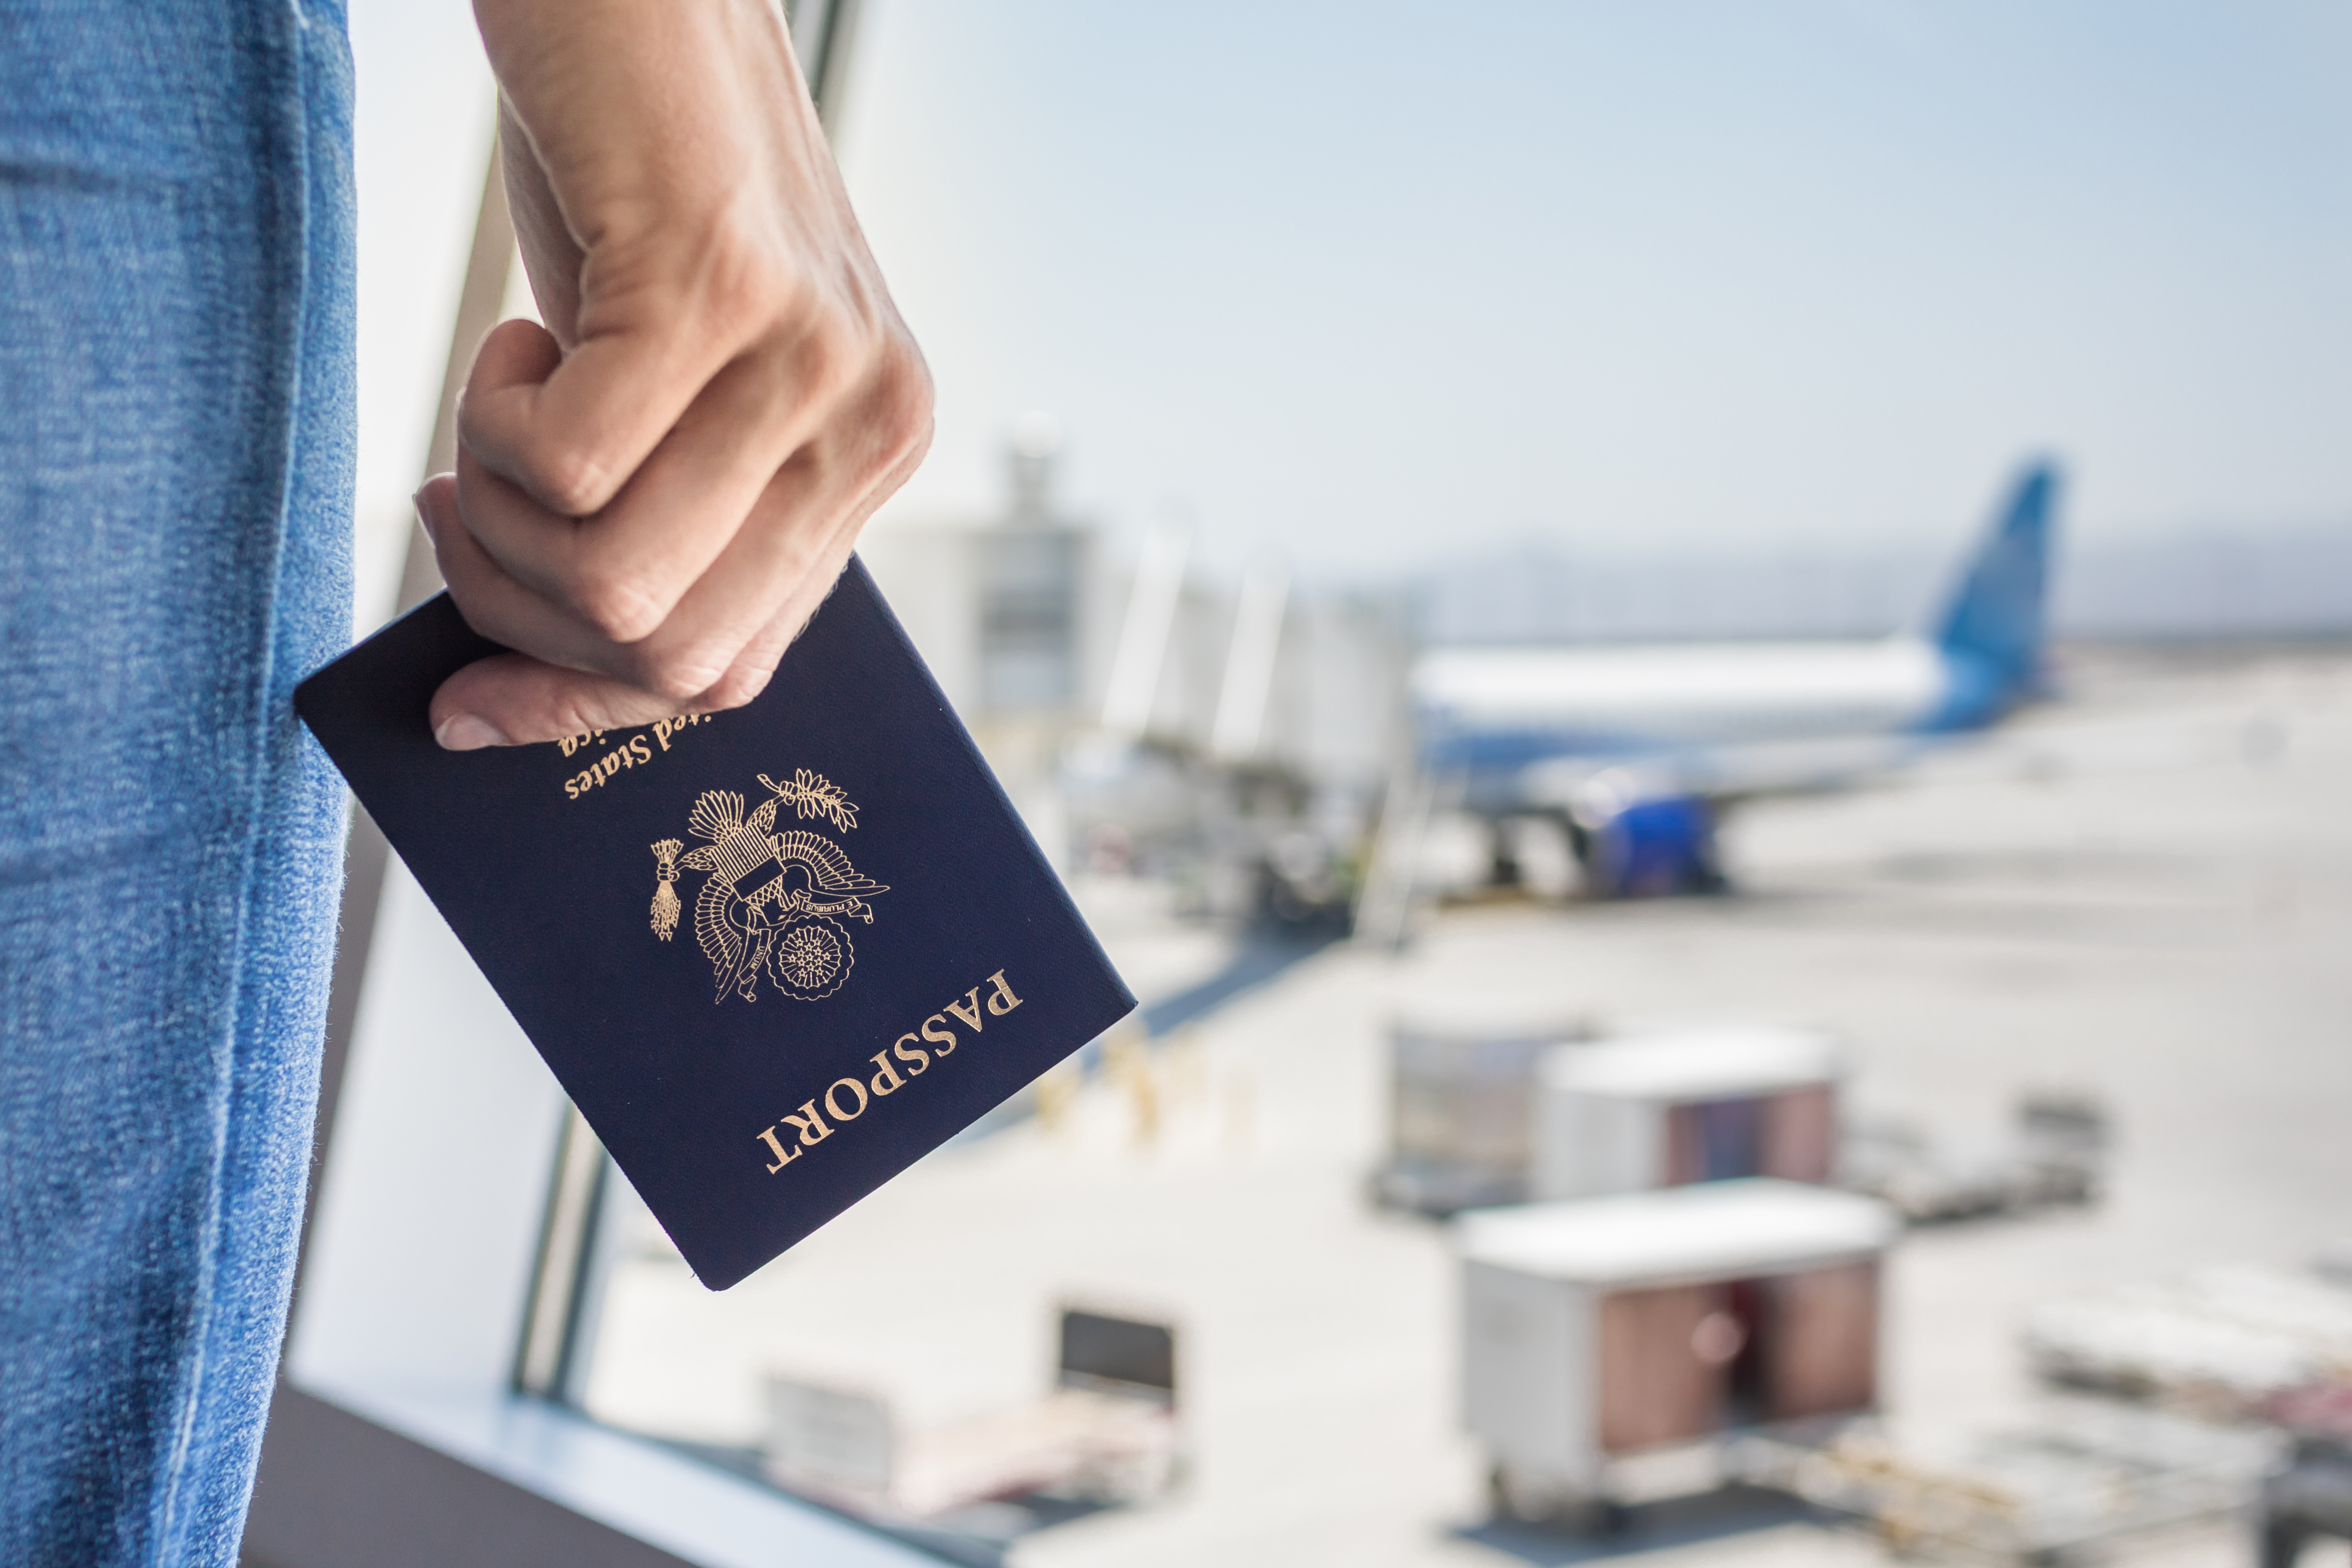 Pay Your Taxes or Lose Your Passport